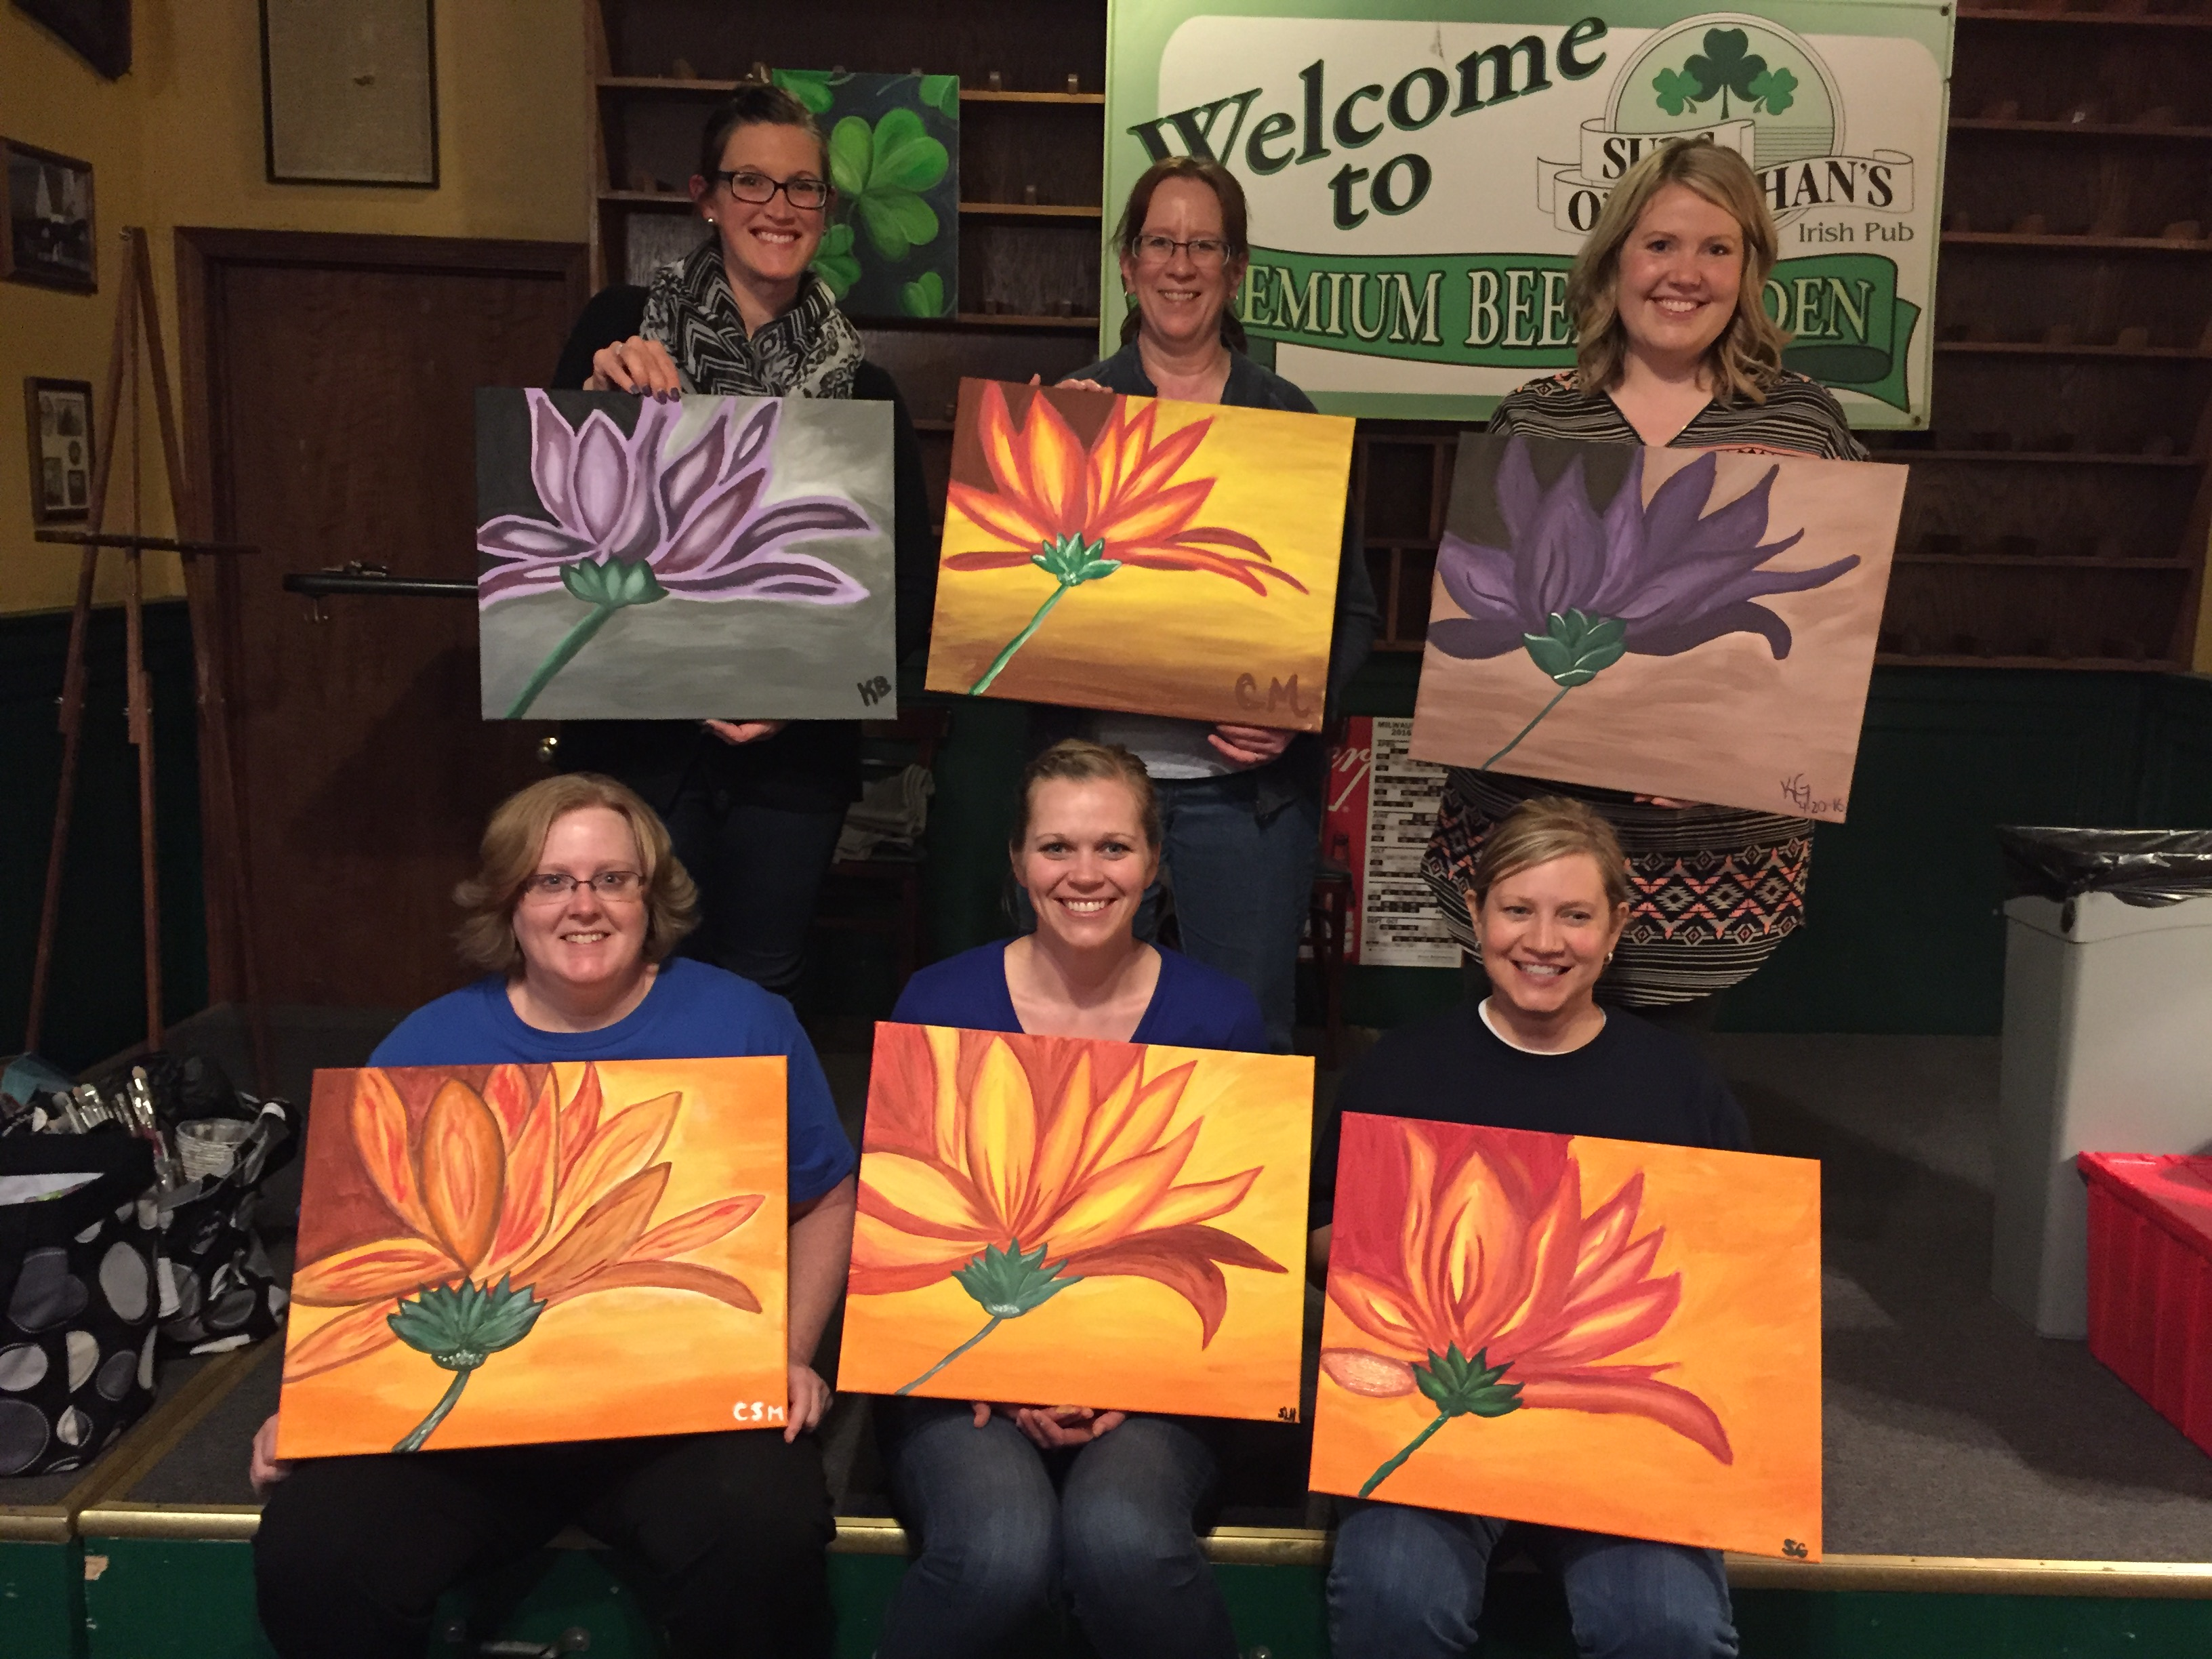 Flower painting at Suds on 4/20/16!